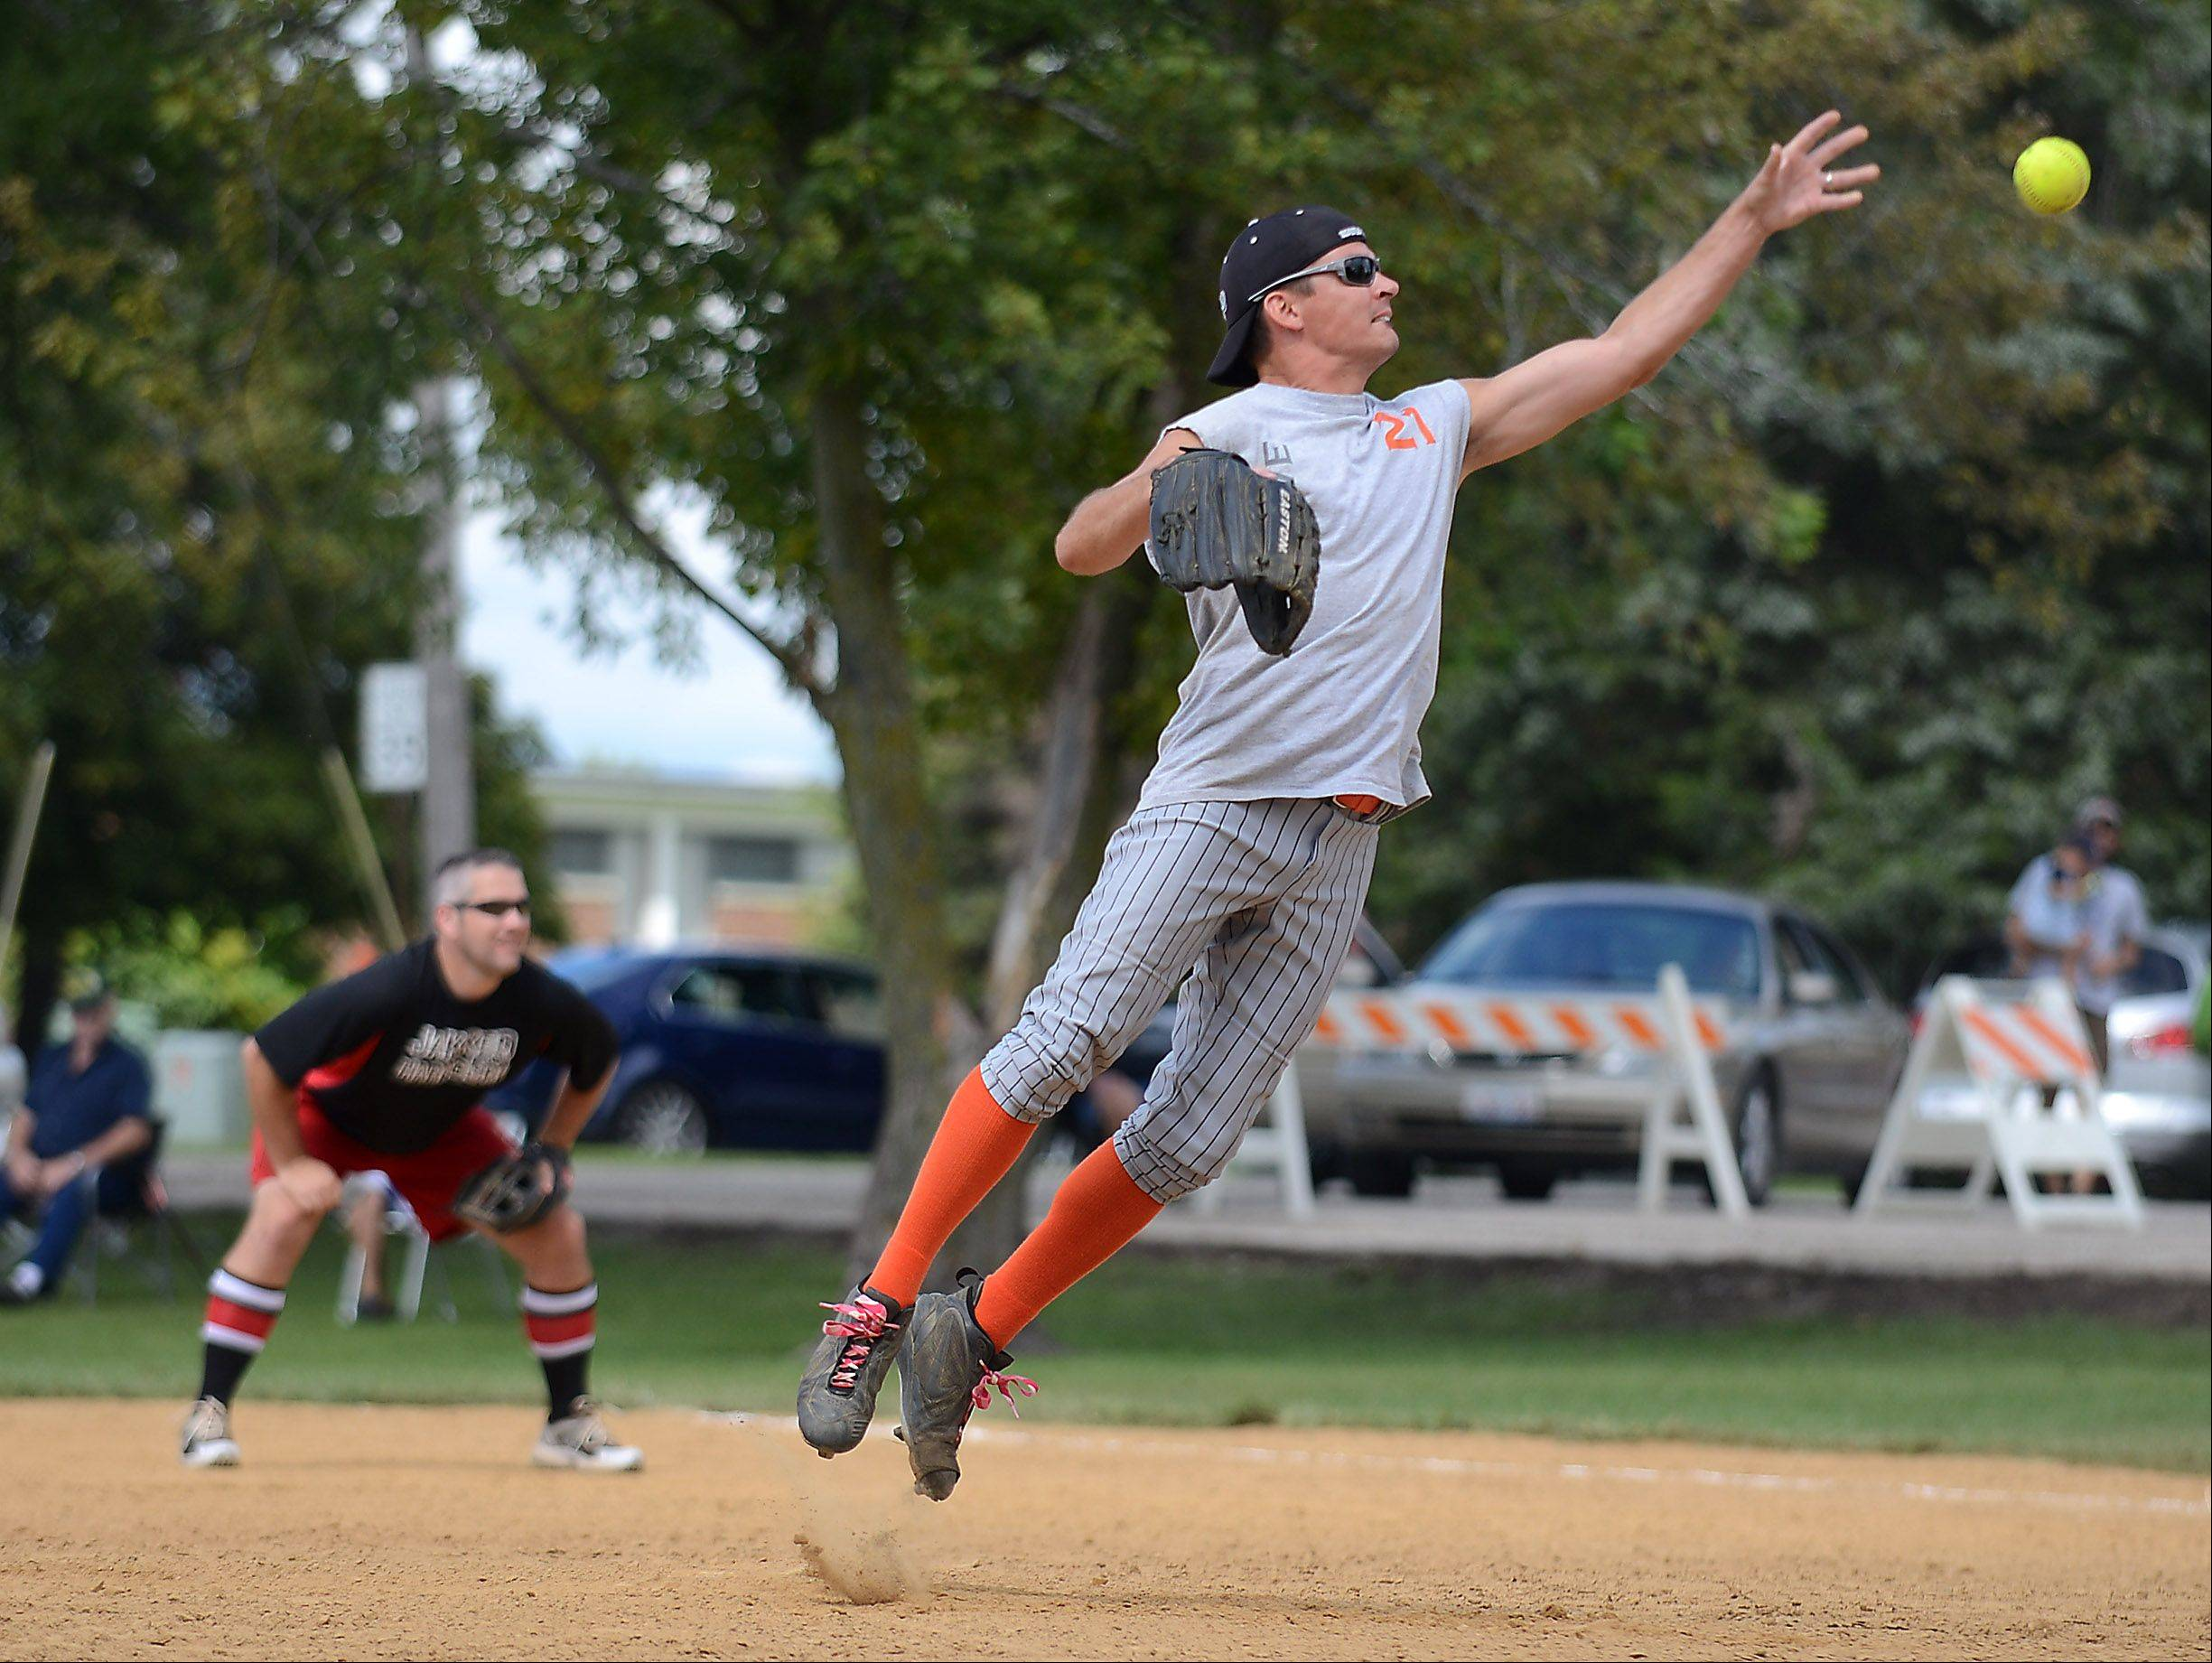 Jim Witok of the R3 Creative team delivers a jump pitch during the slow pitch softball tournament that wraps up Maple Park's annual Fun Fest Monday.